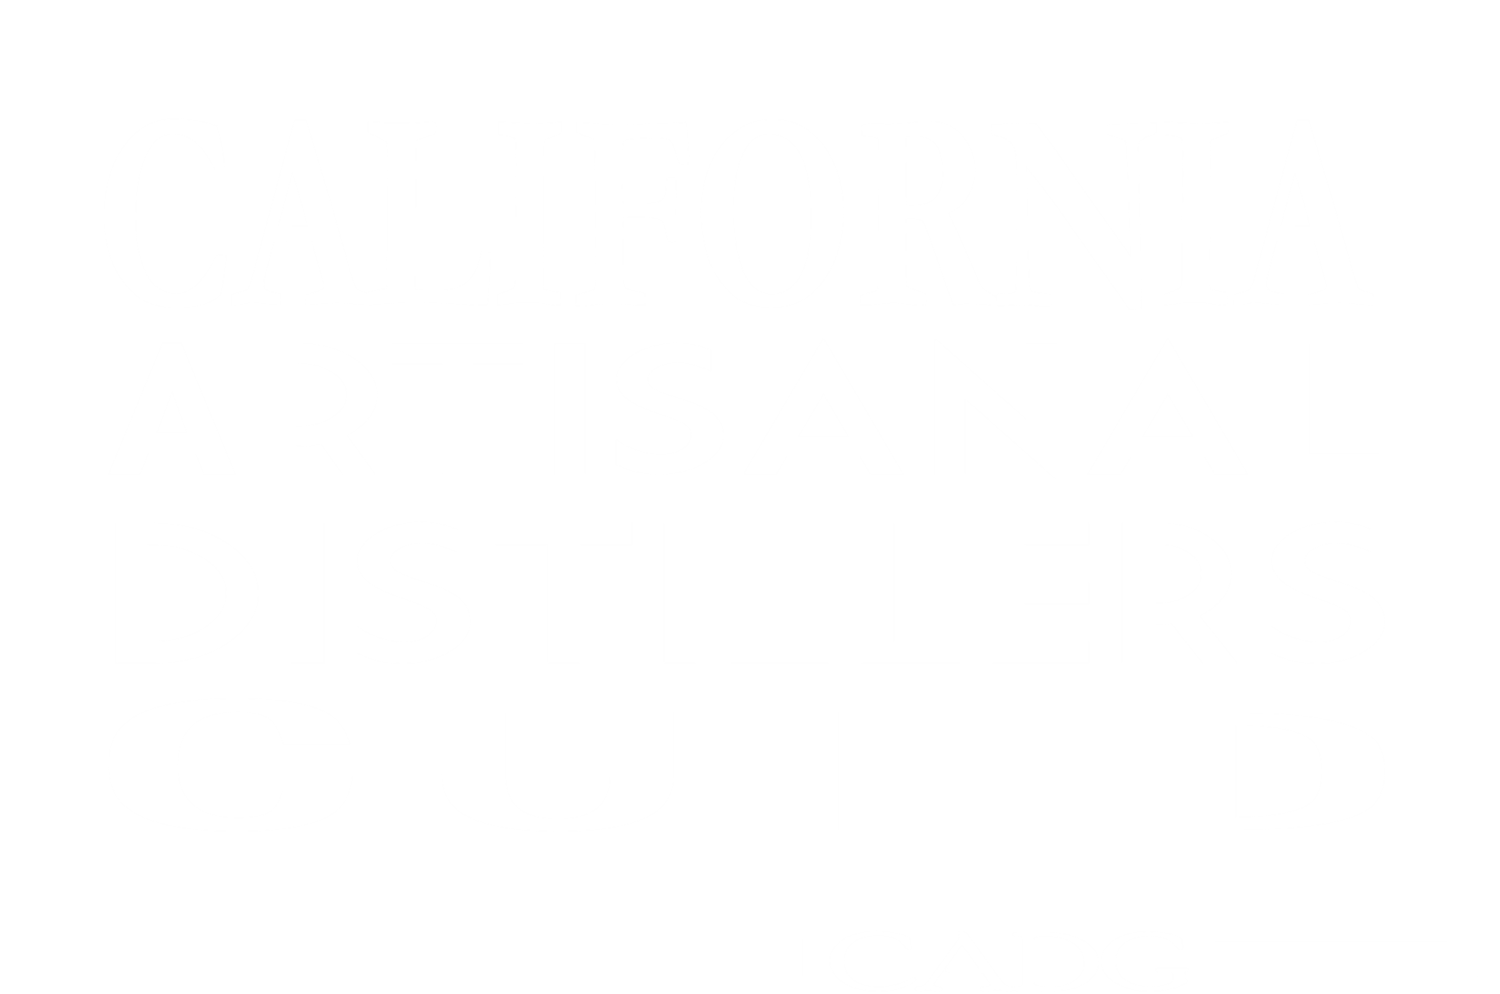 California Artisanal Distillers Guild